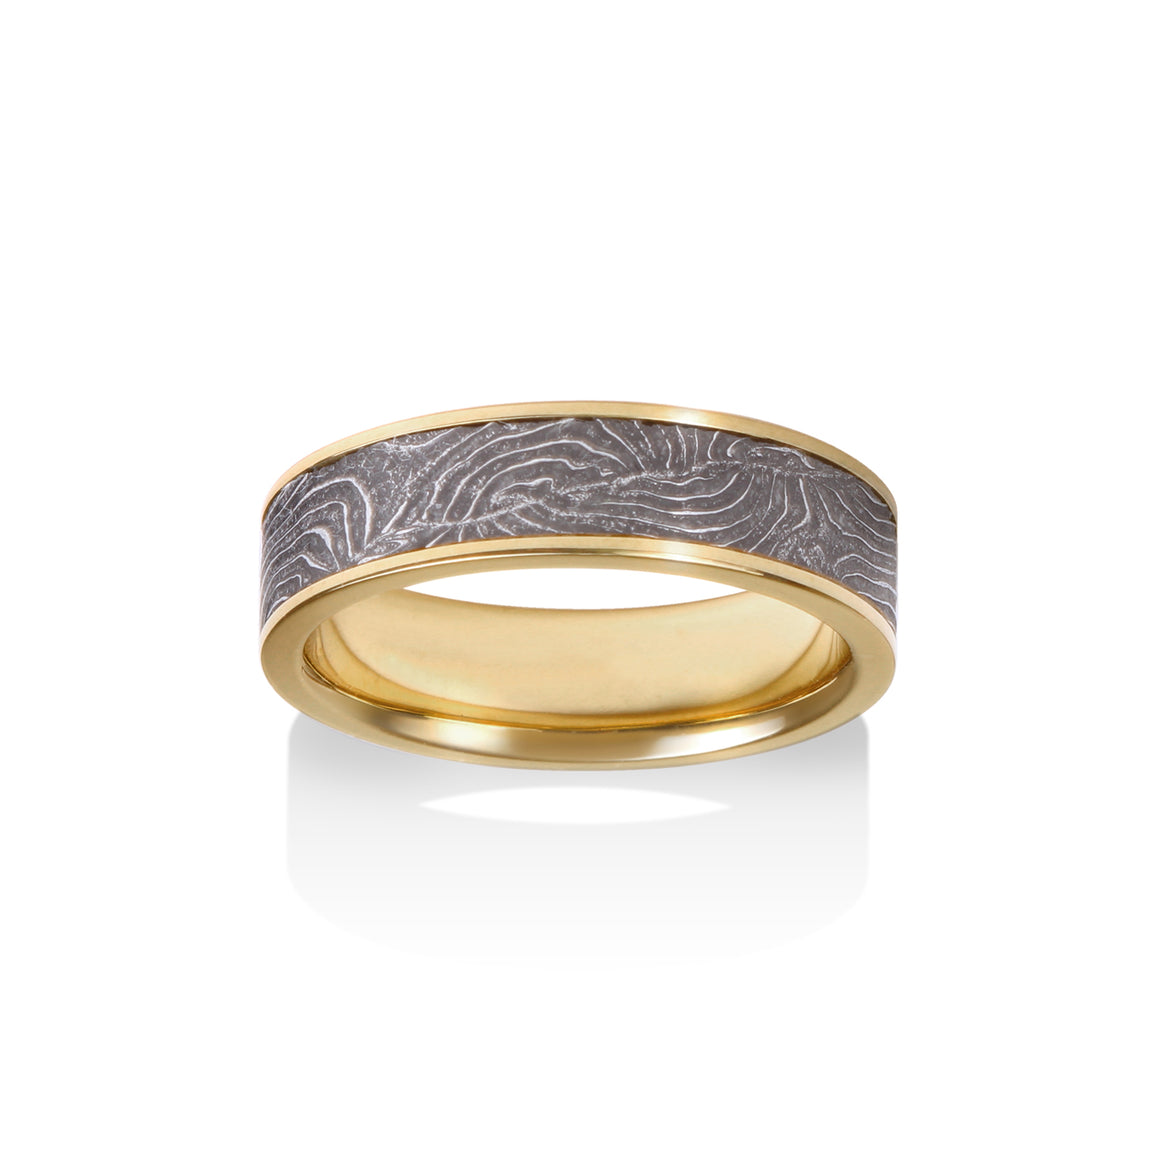 Channel Double Barrel Damascus Ring by Chris Ploof - 18K Yellow Gold - Talisman Collection Fine Jewelers